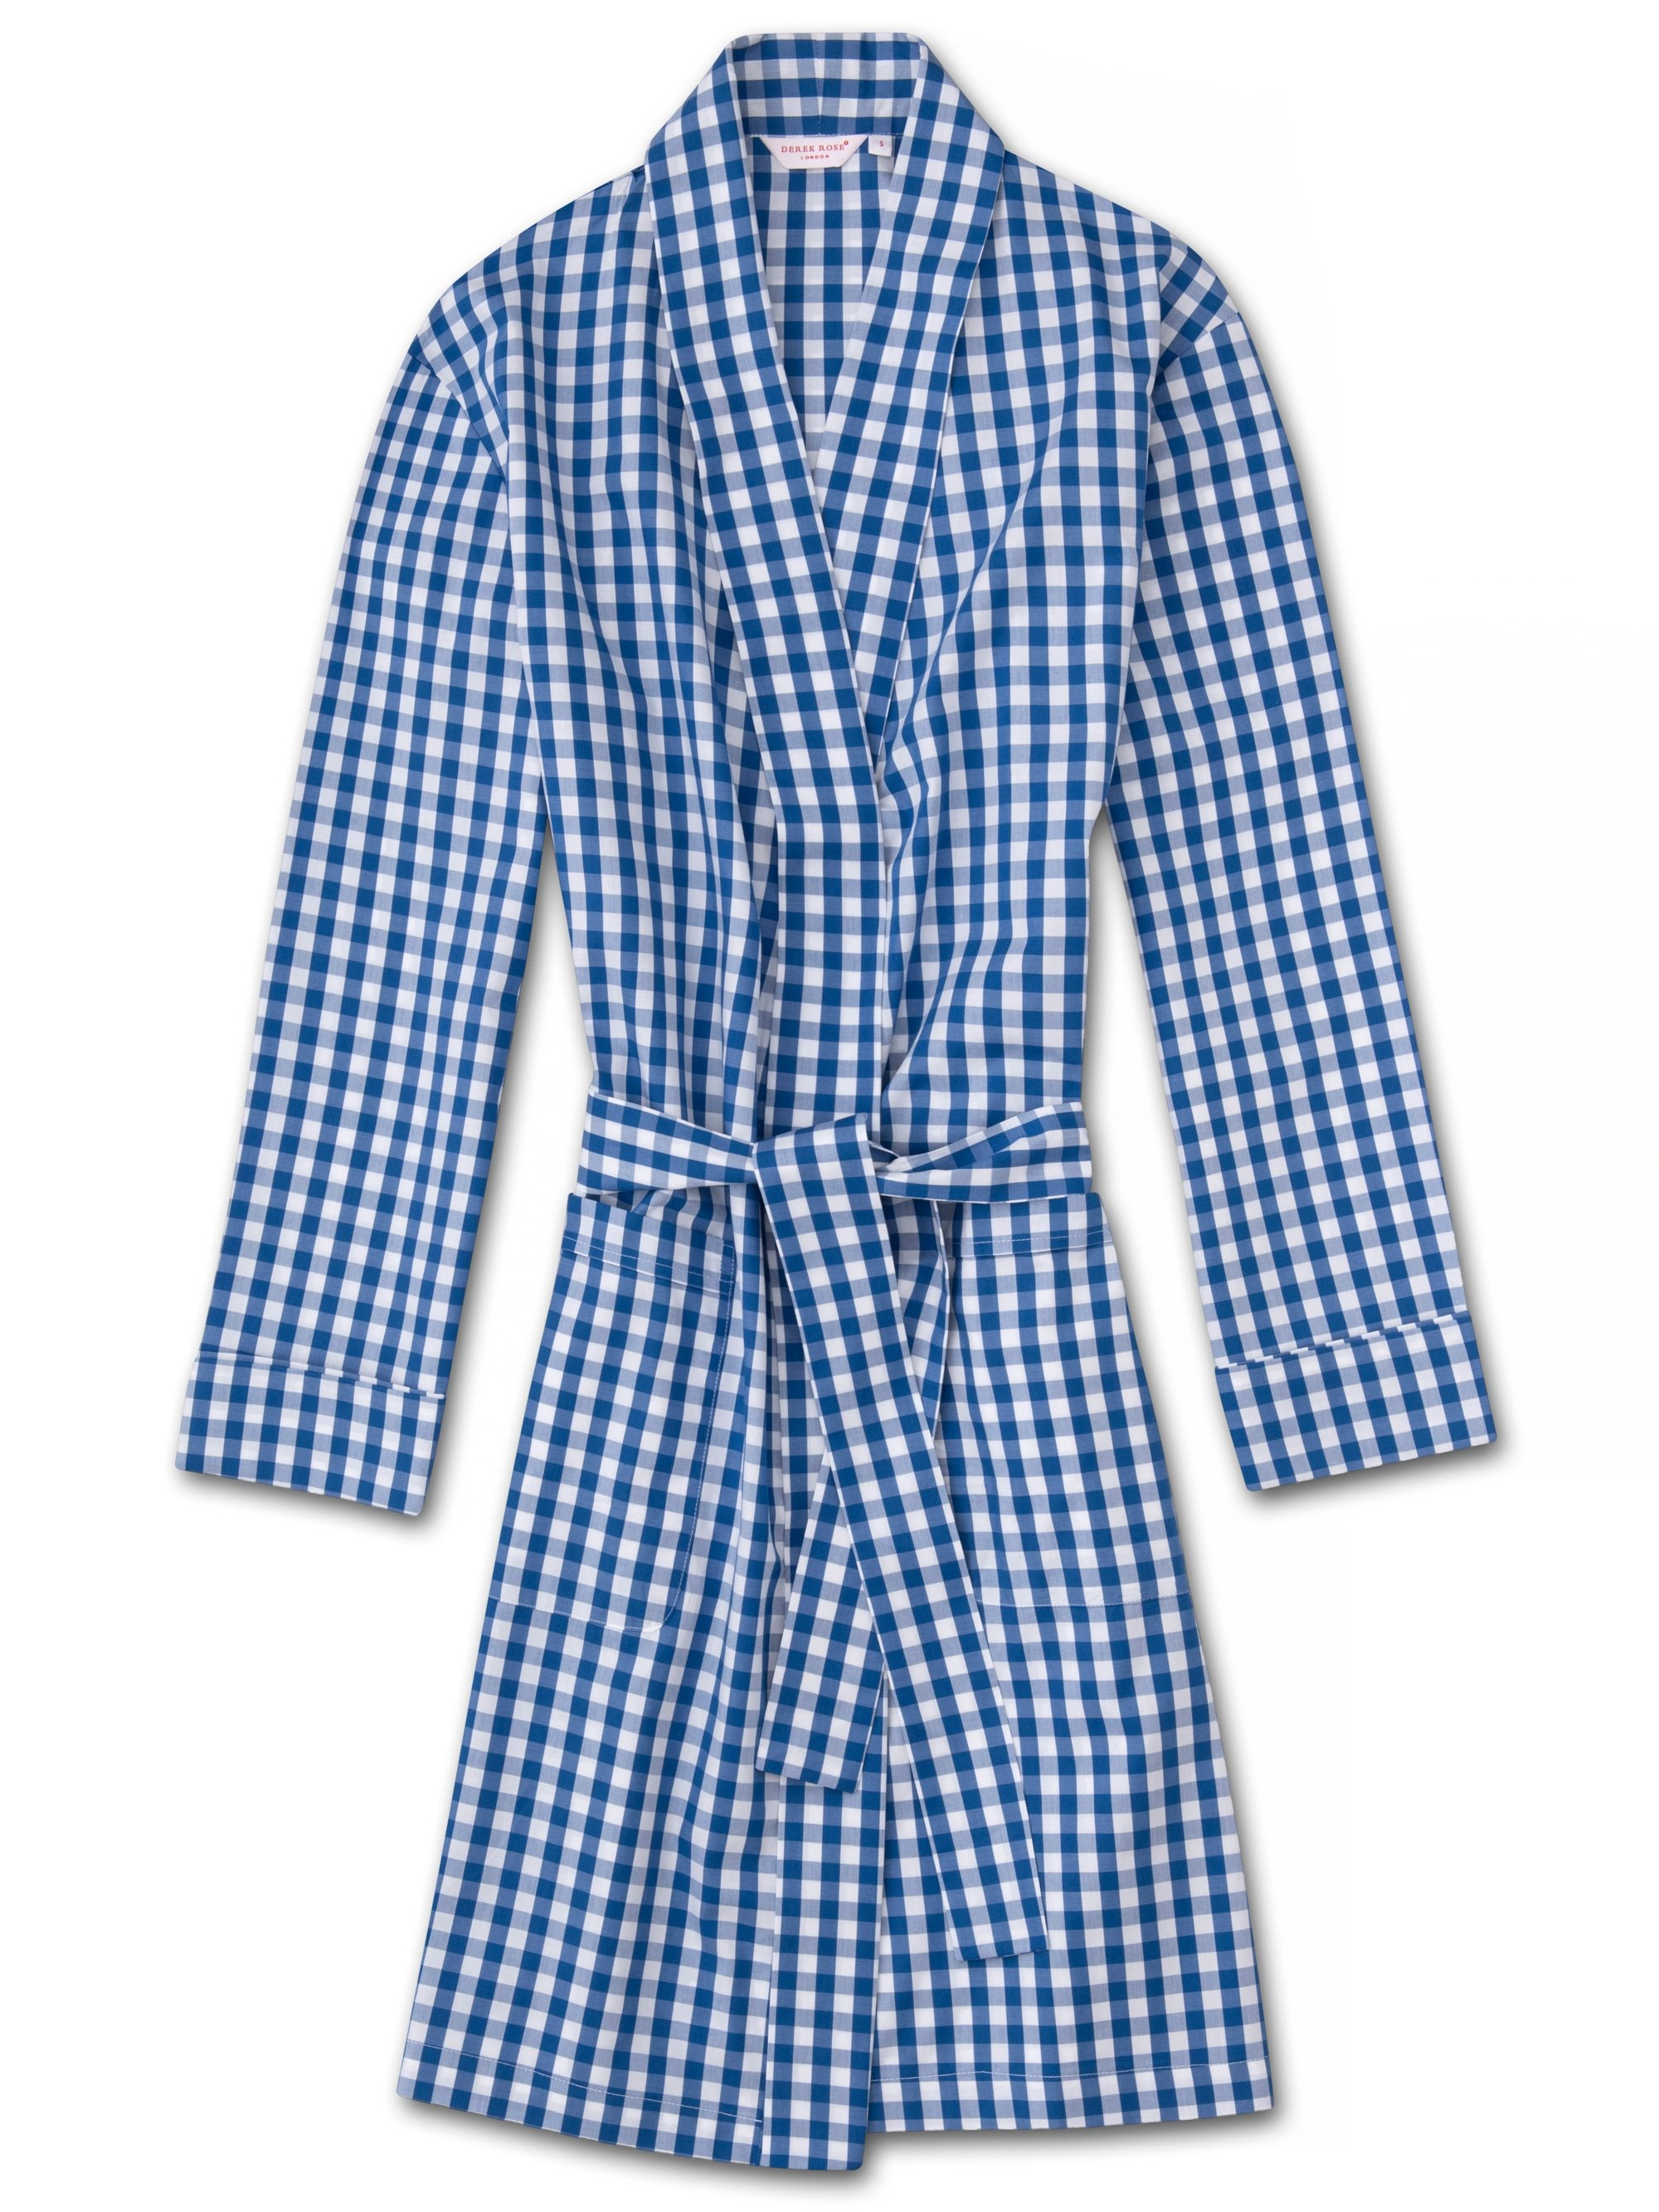 Women's Dressing Gown Barker 26 Cotton Check Blue